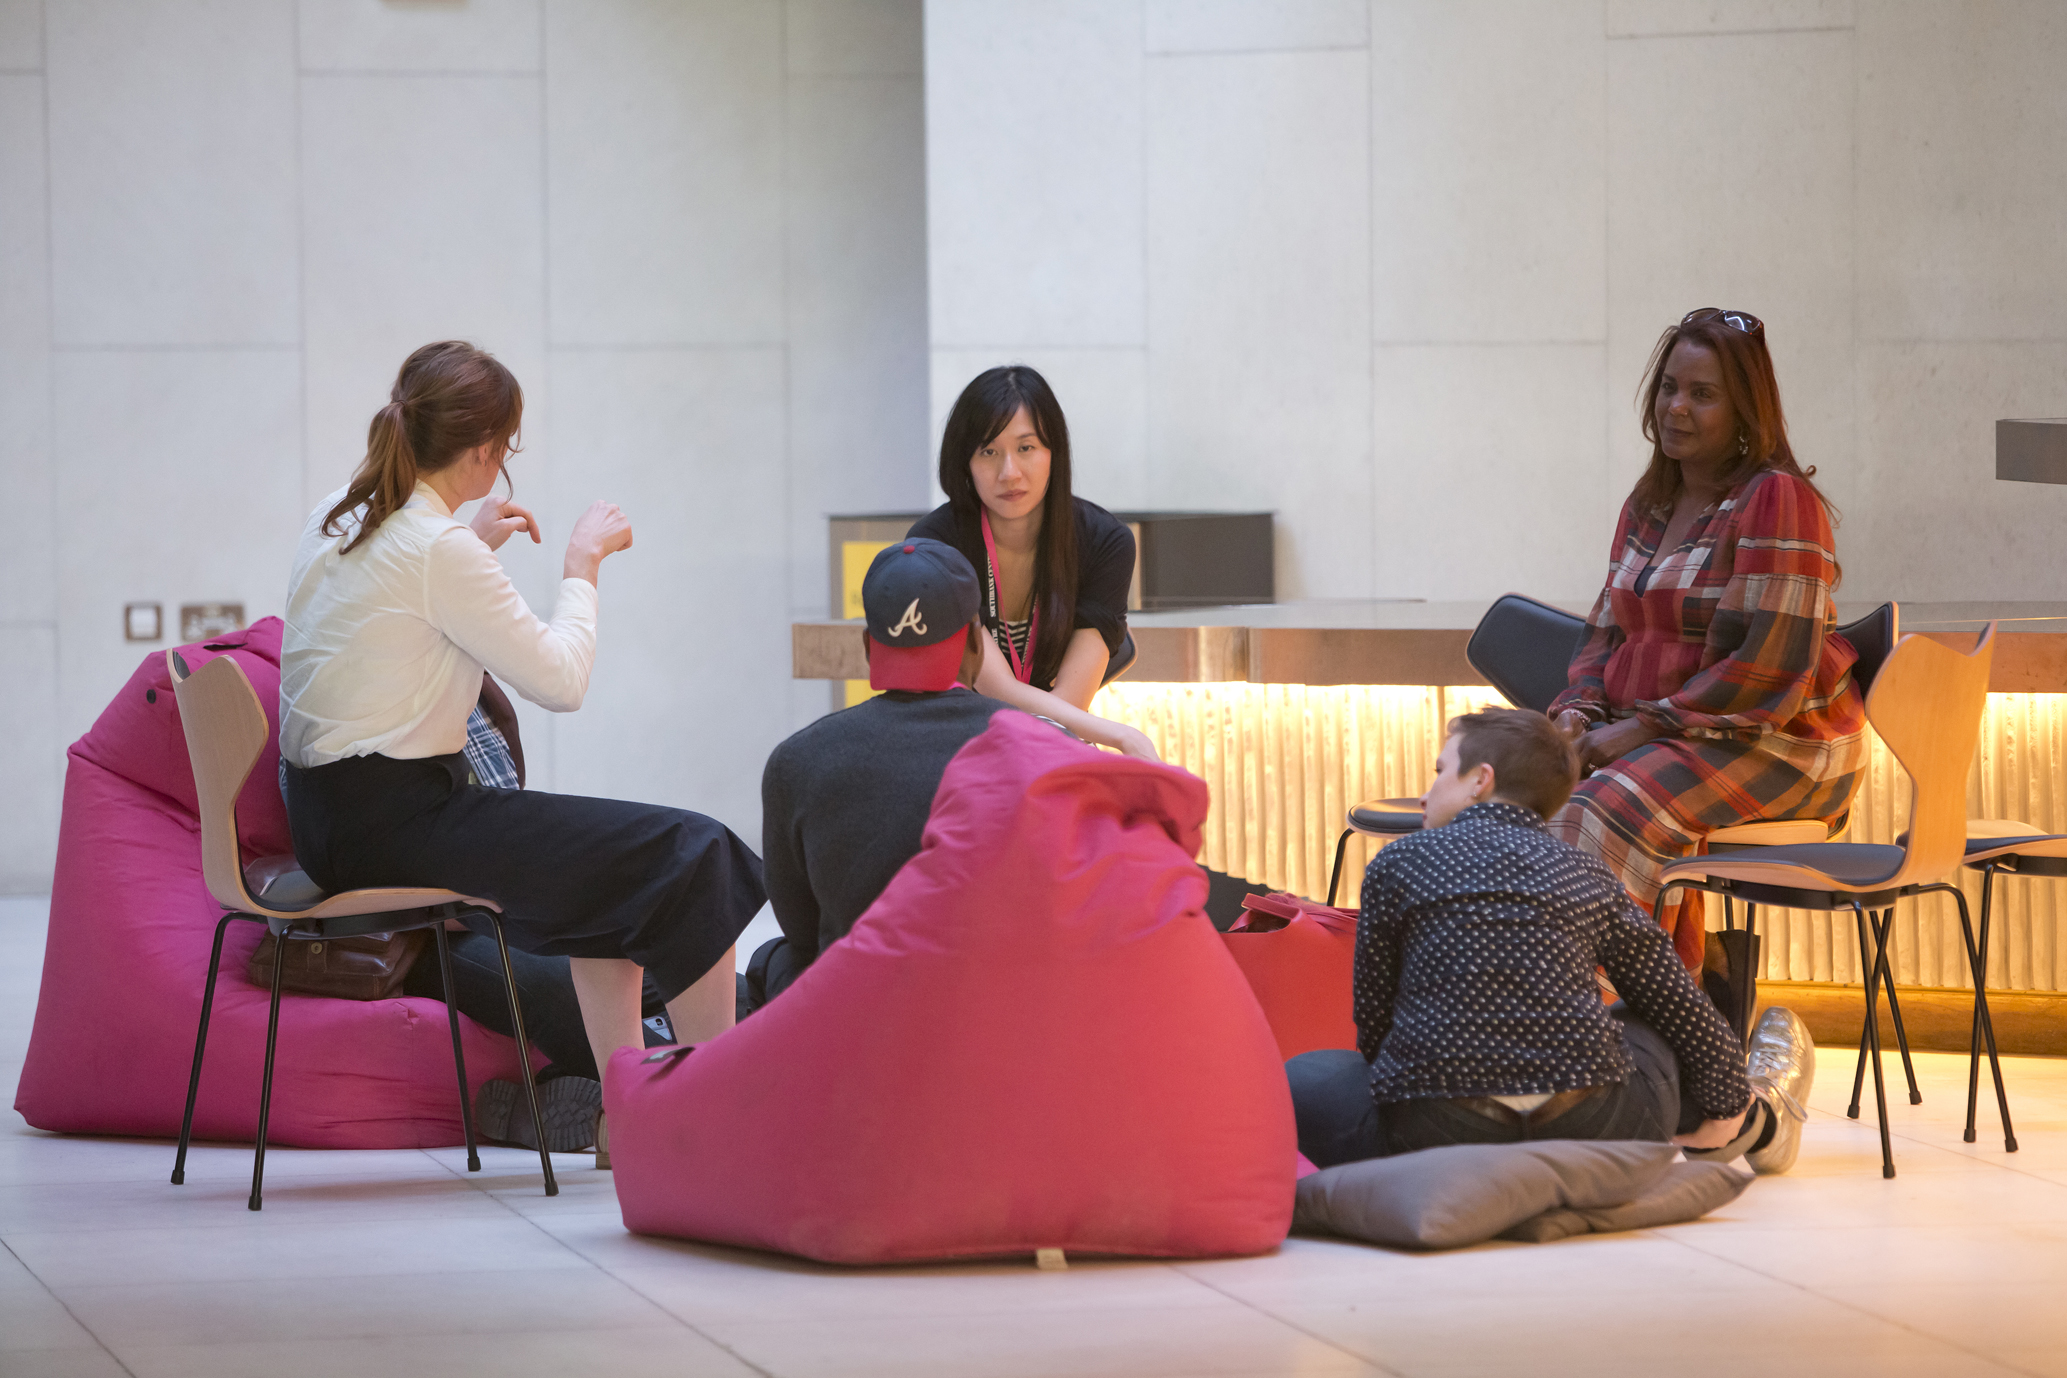 Sandie is in the middle of a group conversation with four people sat on chairs, cushions and beanbags.